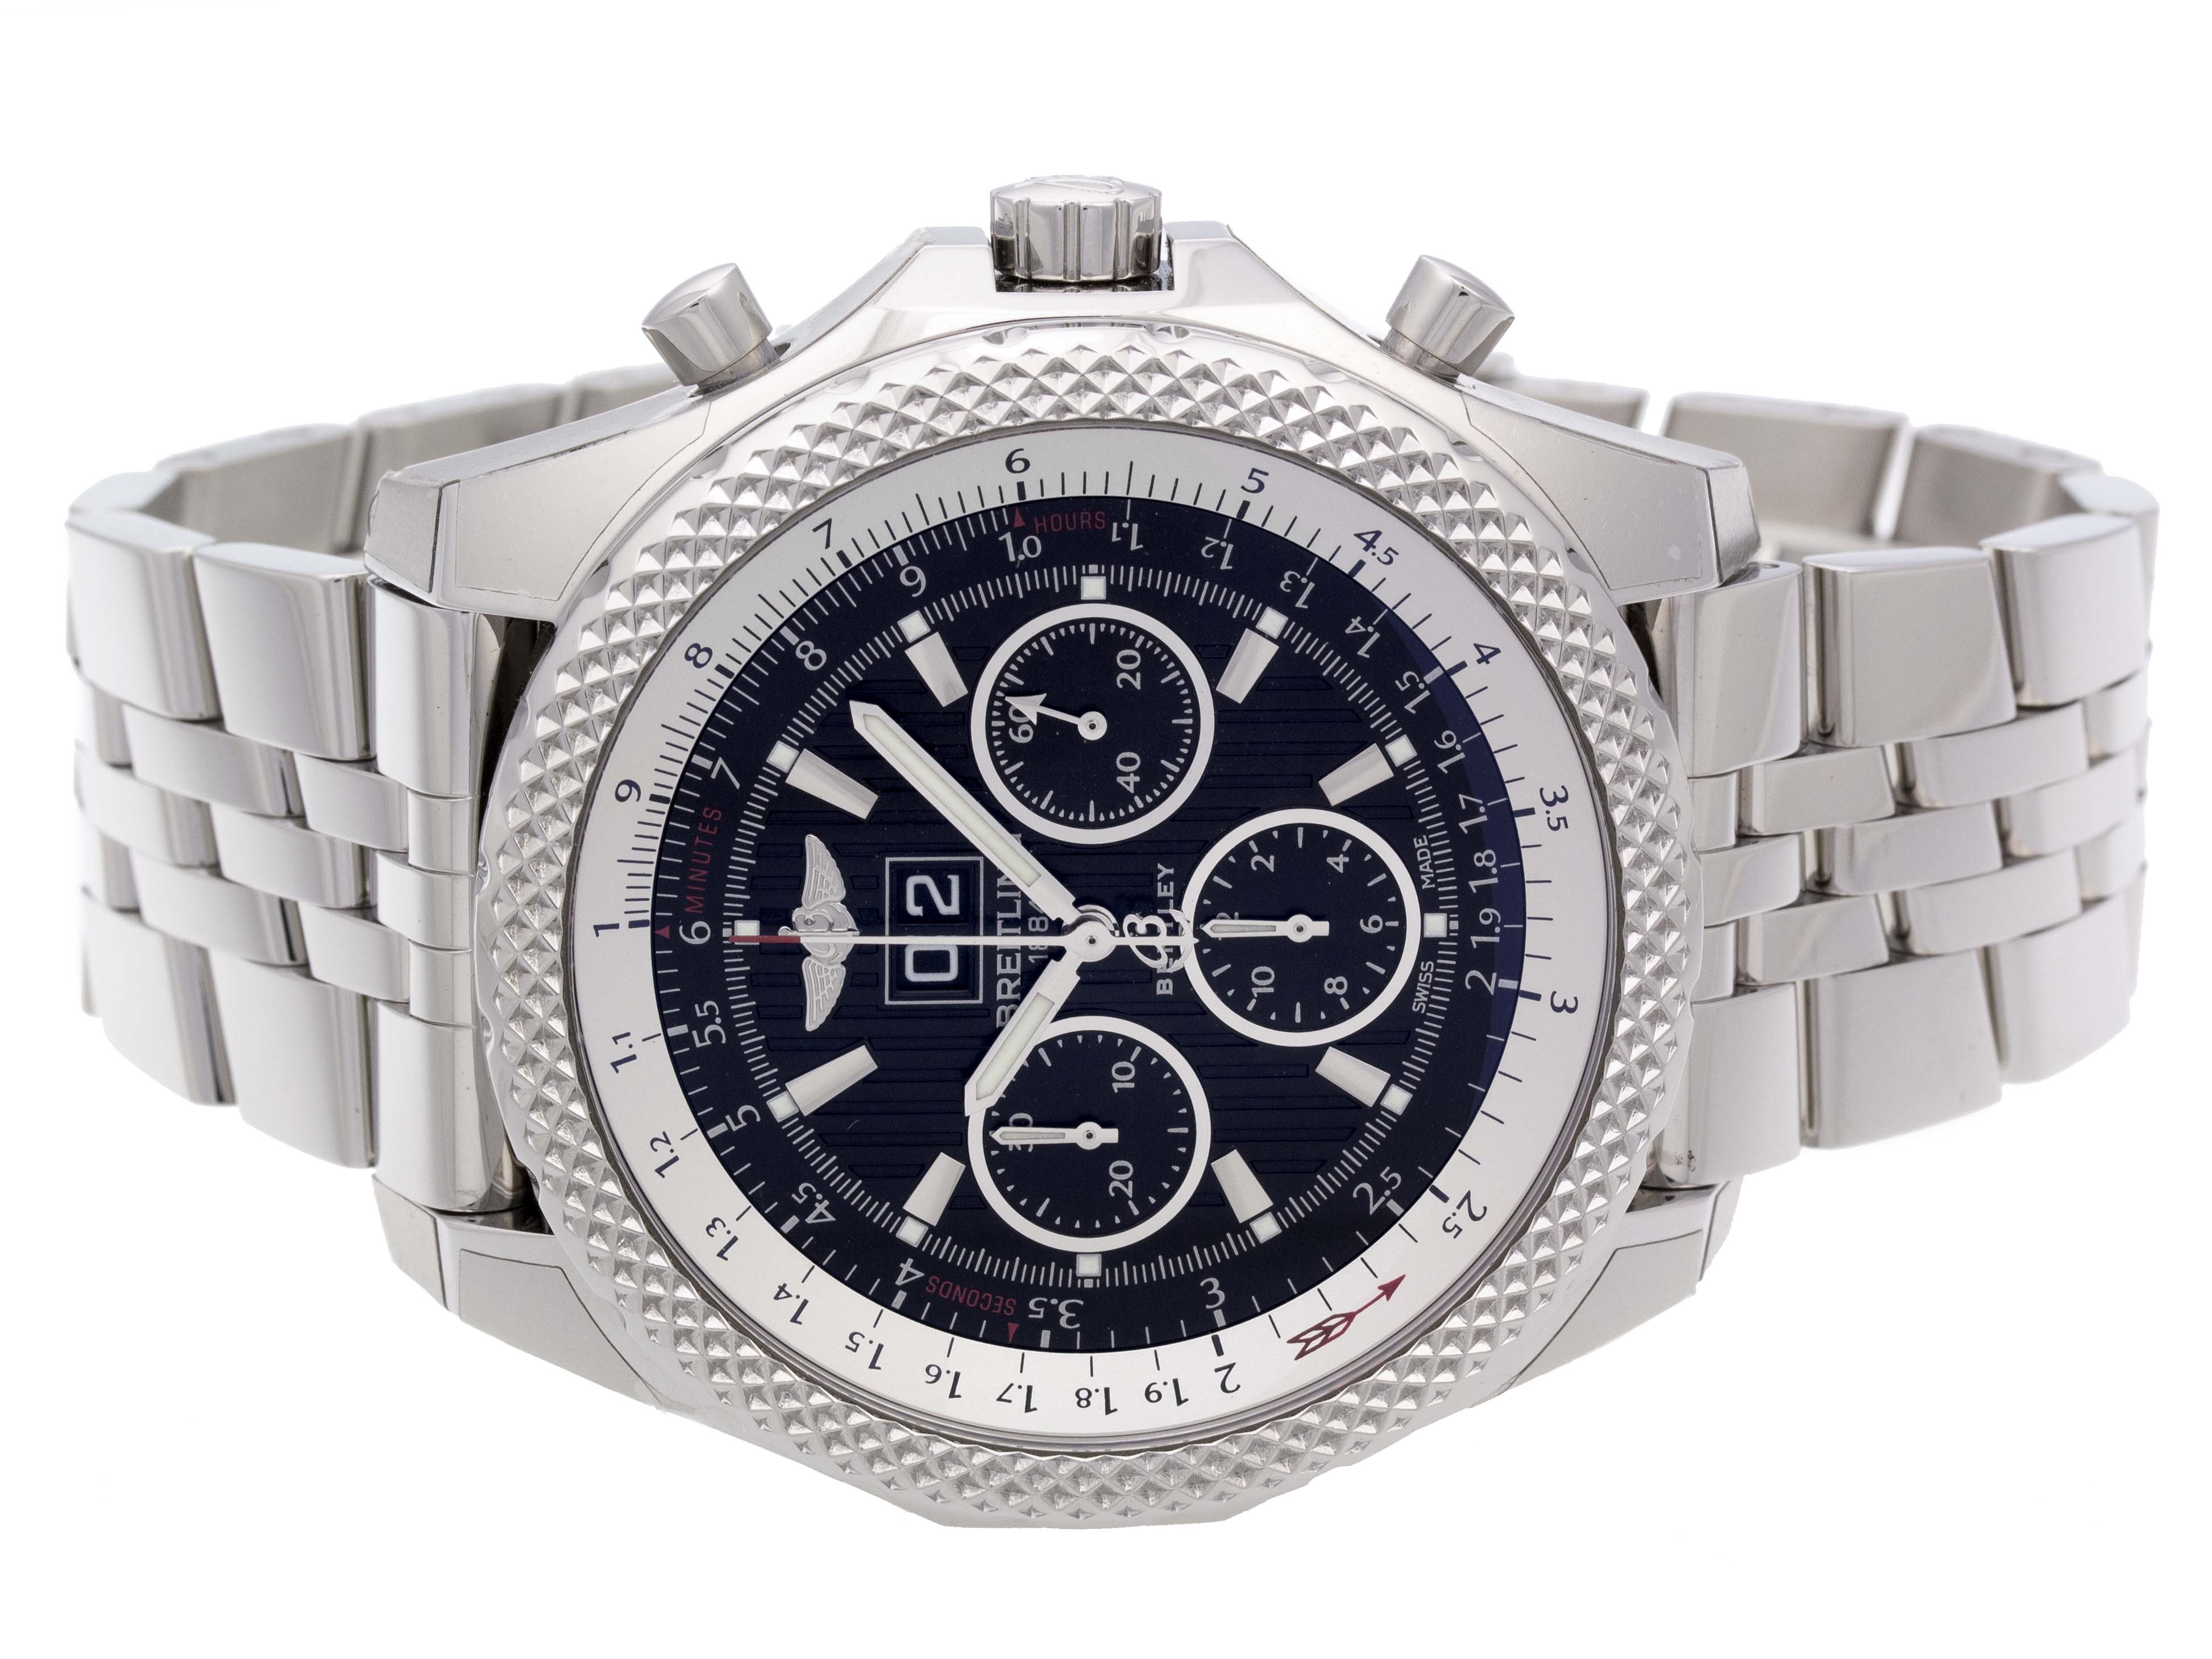 Breitling Bentley 6 75 Speed A4436412 Be17 Precision Watches